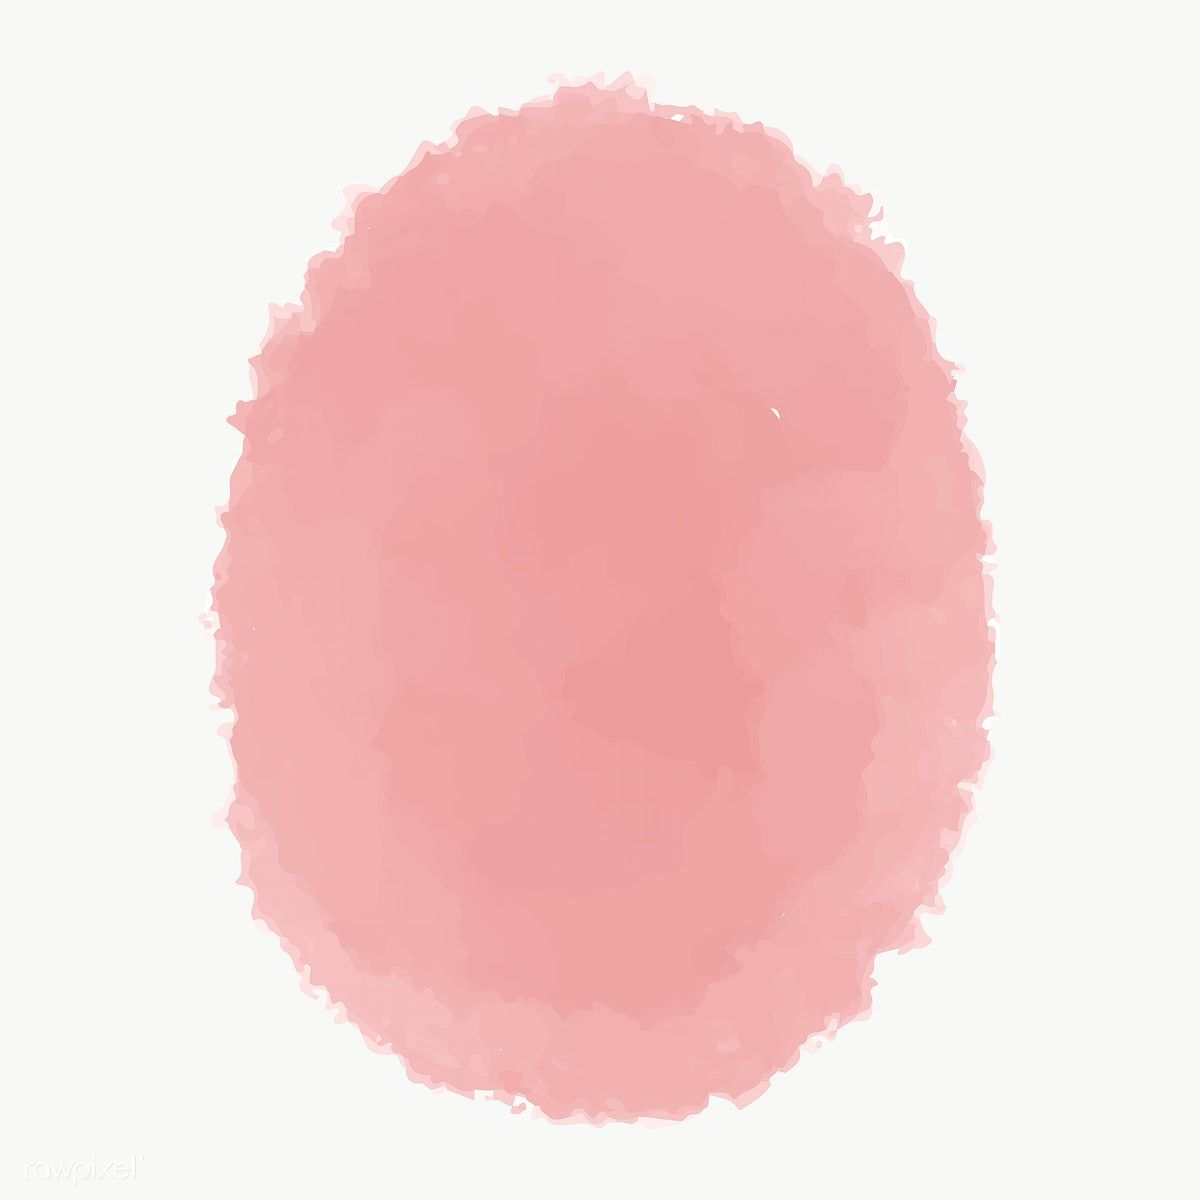 Pink Watercolor Oval Geometric Shape Transparent Png Free Image By Rawpixel Com Ningzk V Pink Watercolor Geometric Shapes Printable Designs